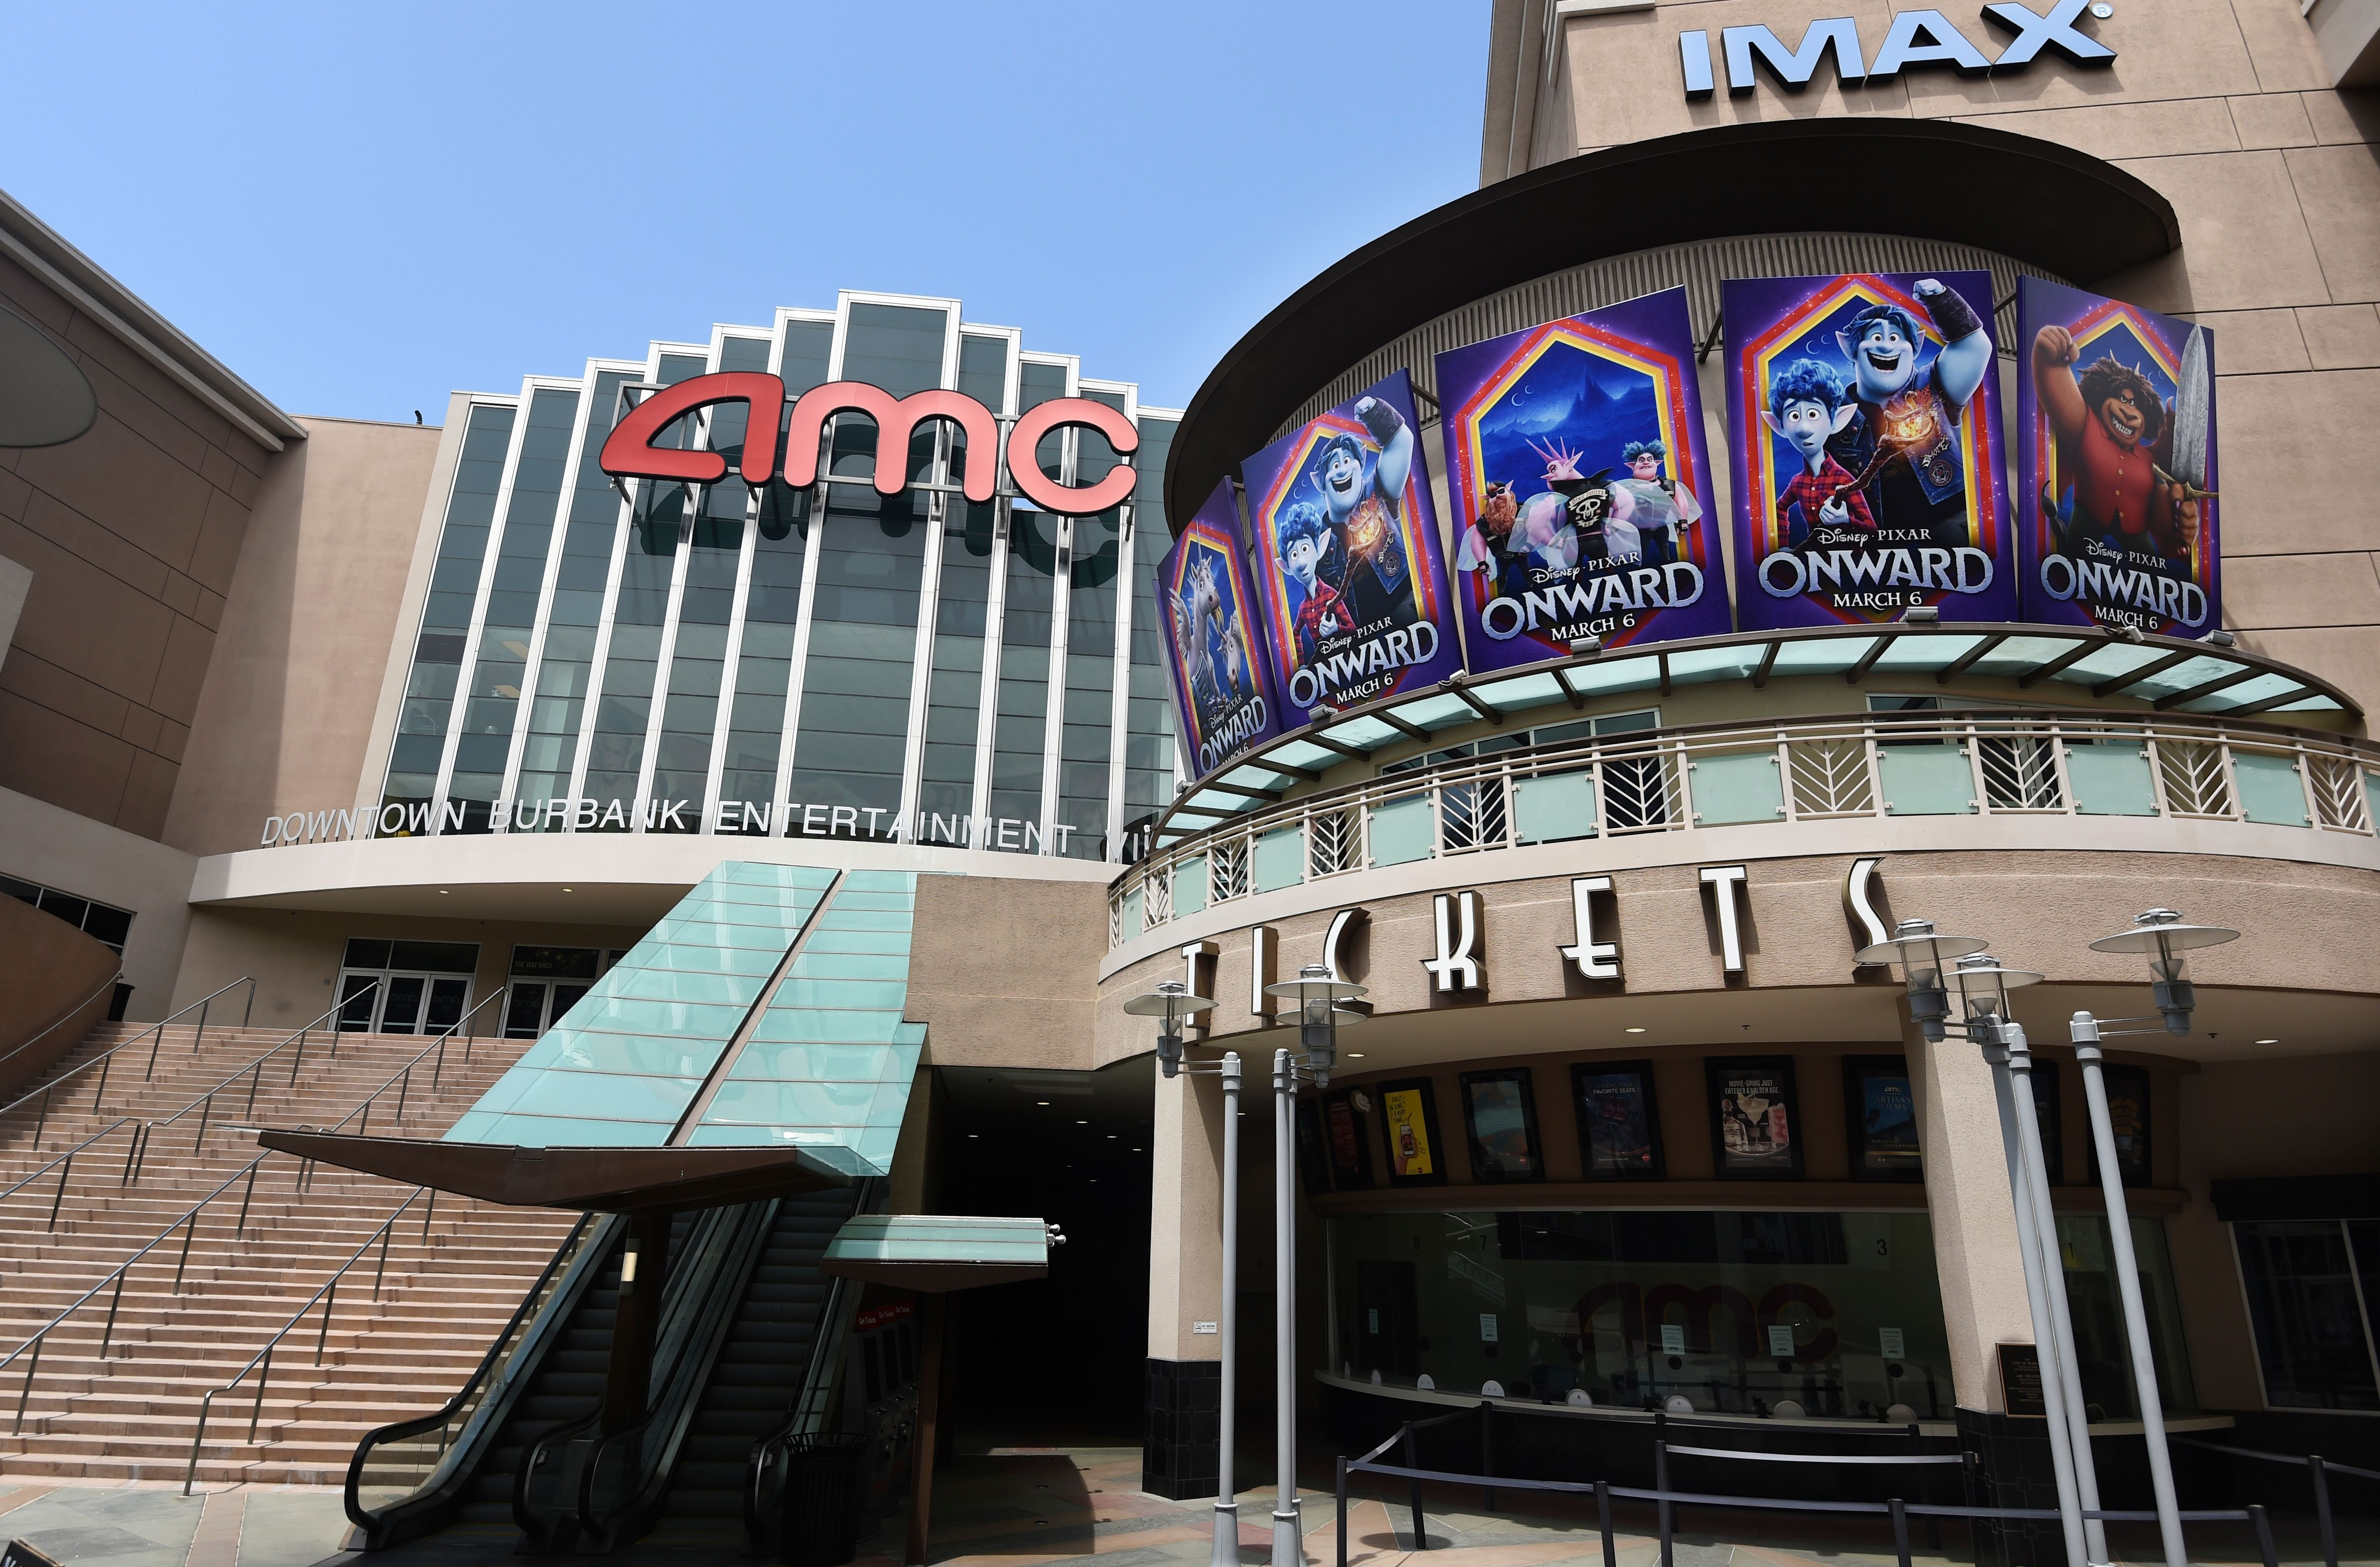 Amc Theatres Now Reopening July 30 After Tenet Shift Deadline Amc is taking enhanced health and safety measures with its amc safe & clean program. 2